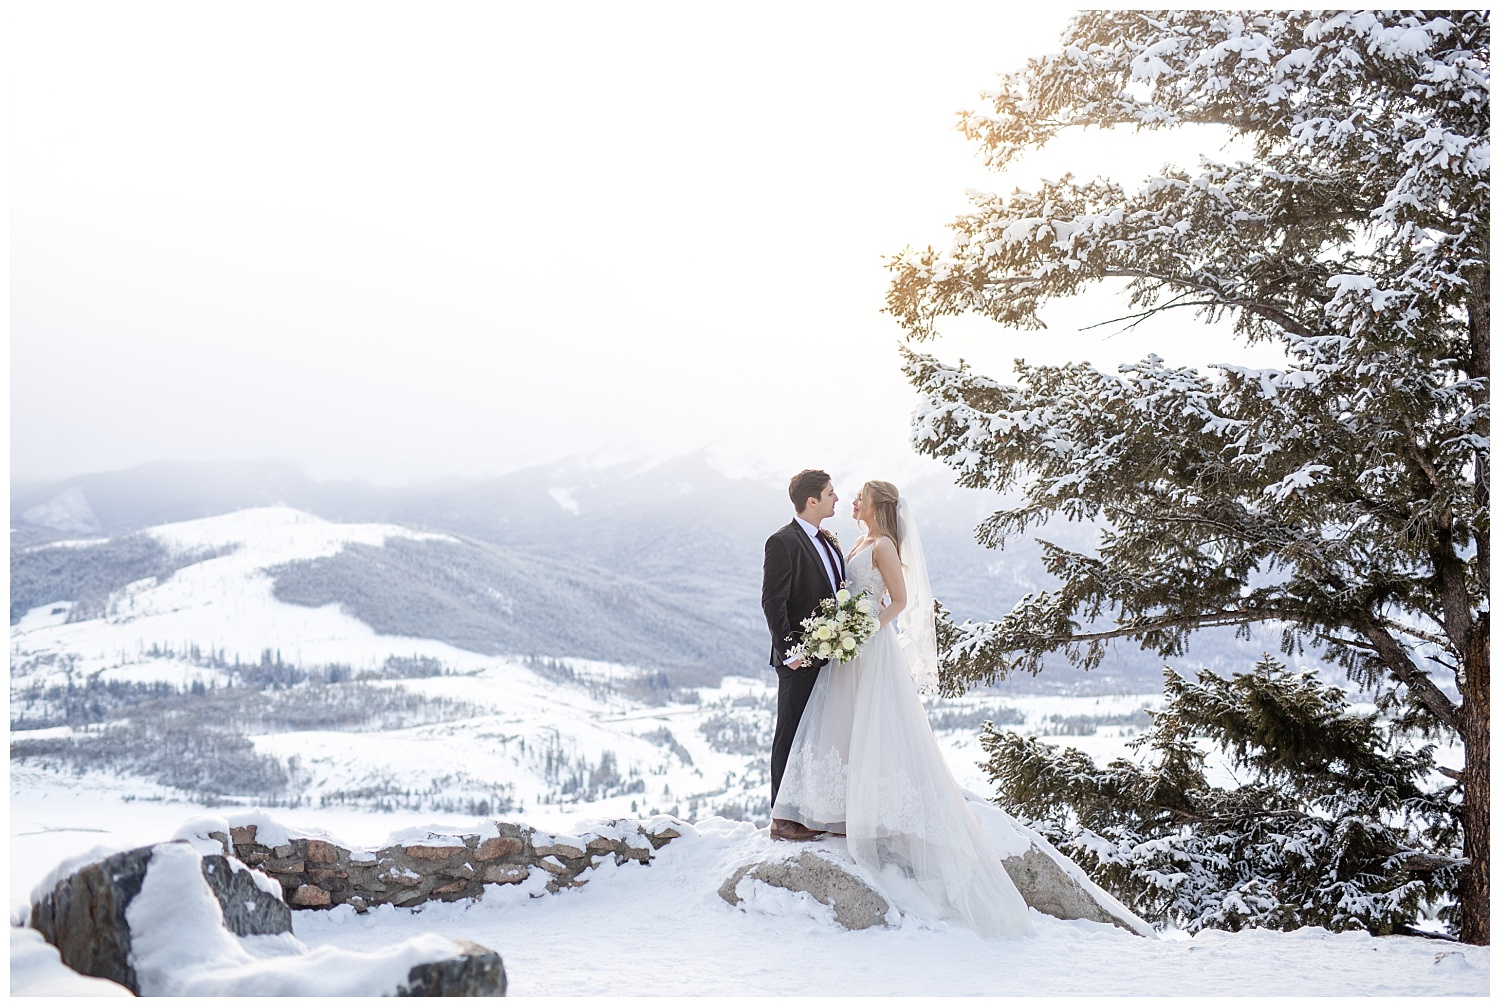 A bride and groom stand on the side of a mountain at Sapphire Point Overlook in winter